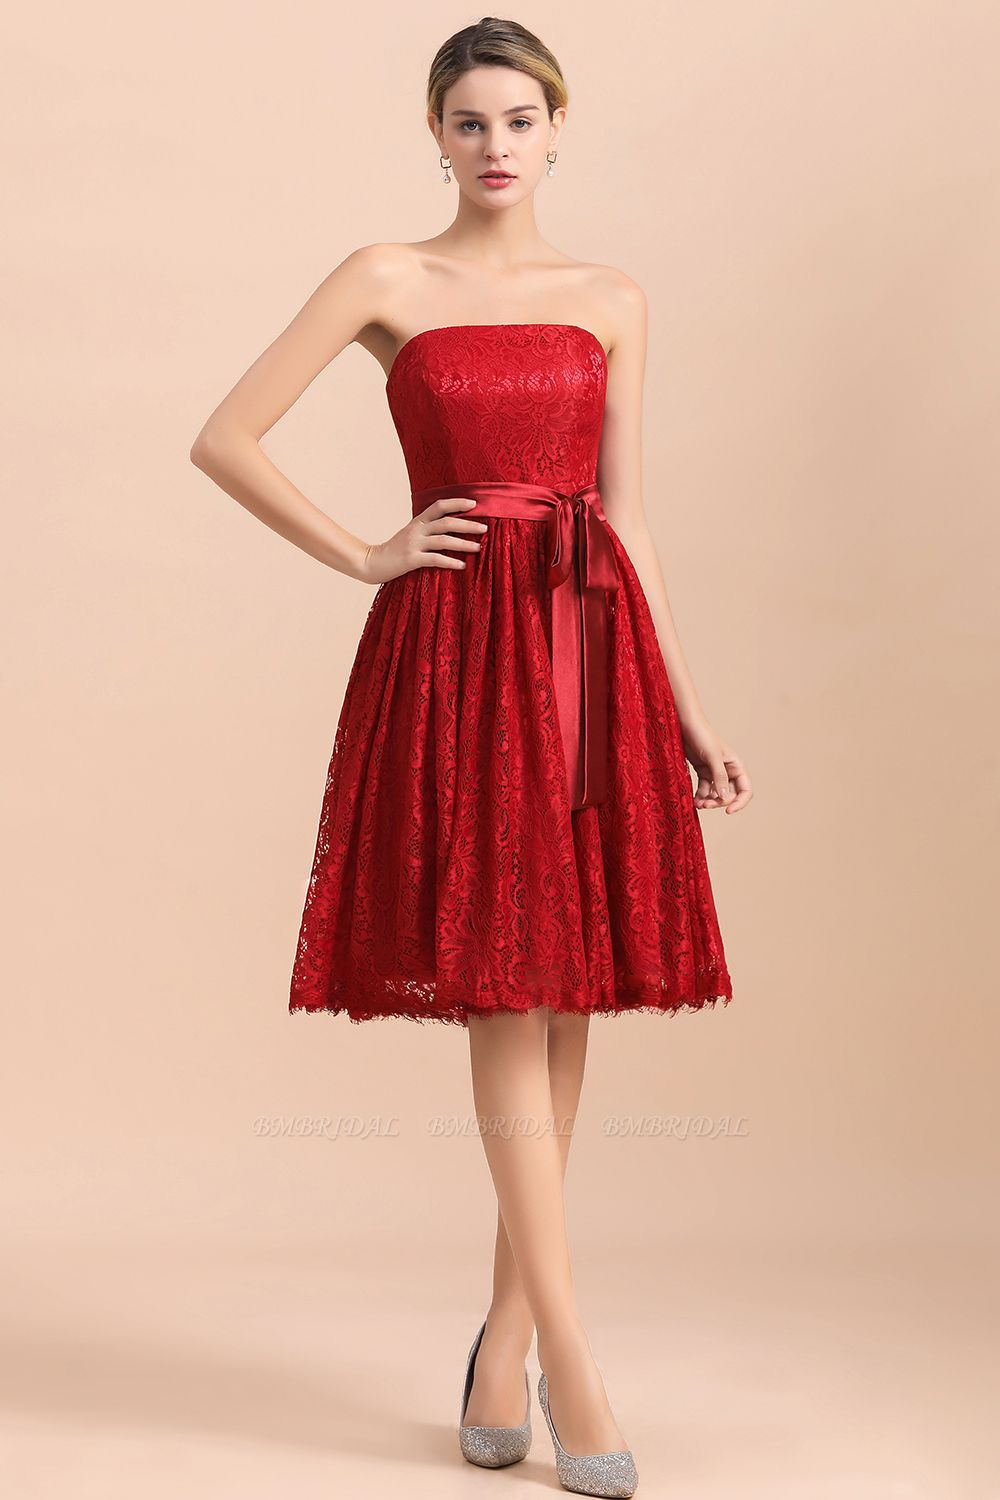 BMbridal Pretty Strapless Red Lace Bridesmaid Dresses Sleeveless Short Wedding Party Dress with Sash